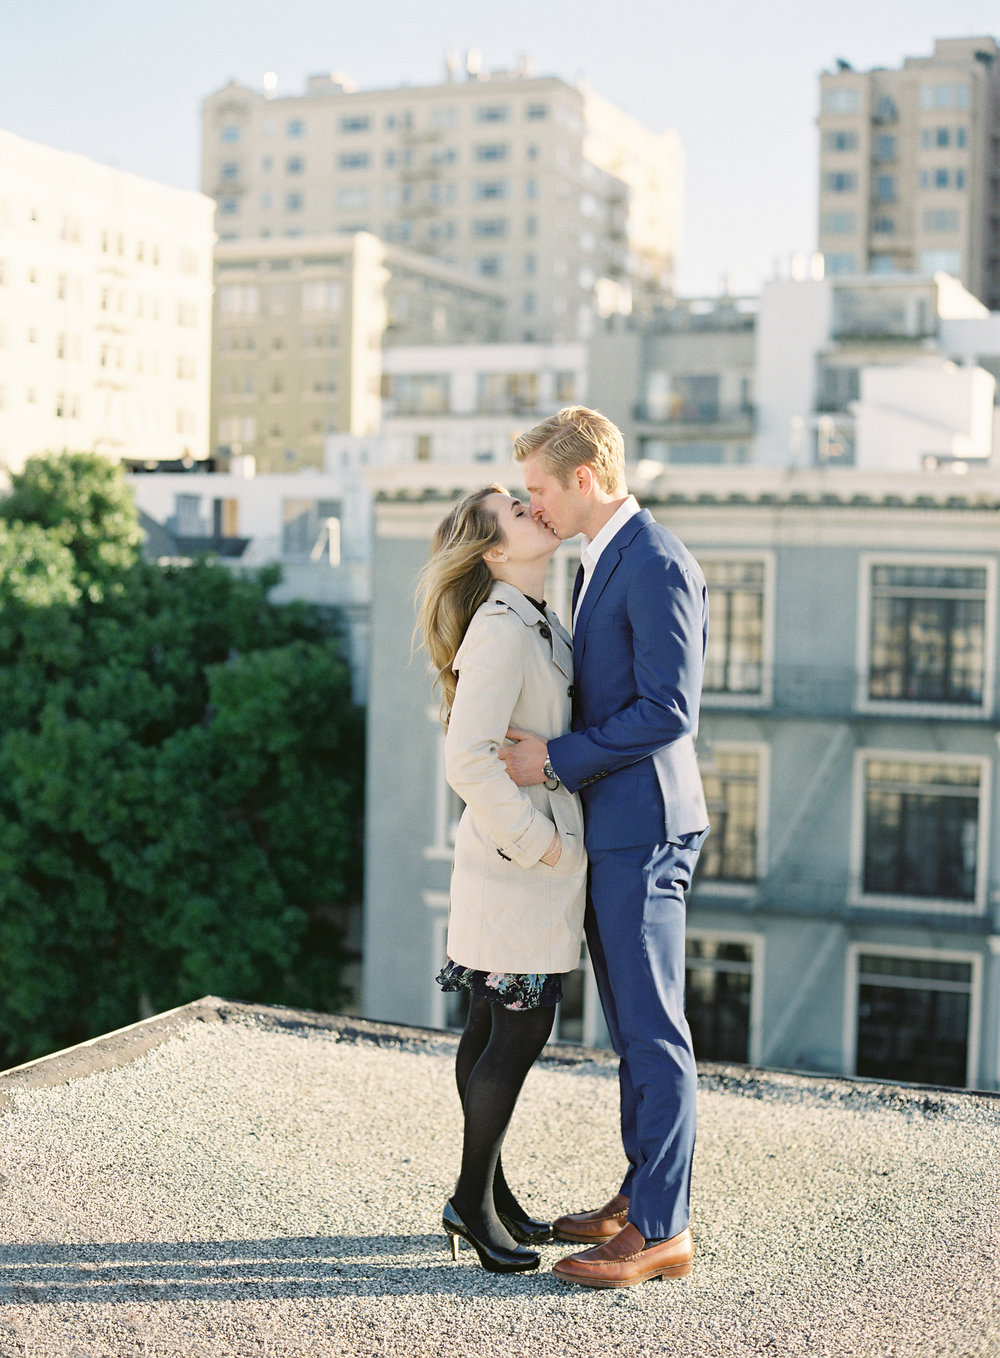 Jessica and Andrew Engagement-Carrie King Photographer-100.jpg